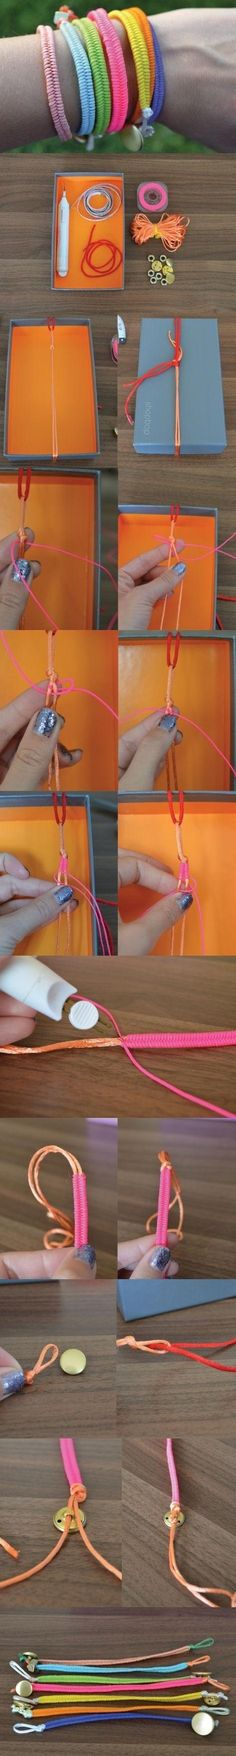 DIY Fishtail Bracelet DIY Fishtail Bracelet by diyforever